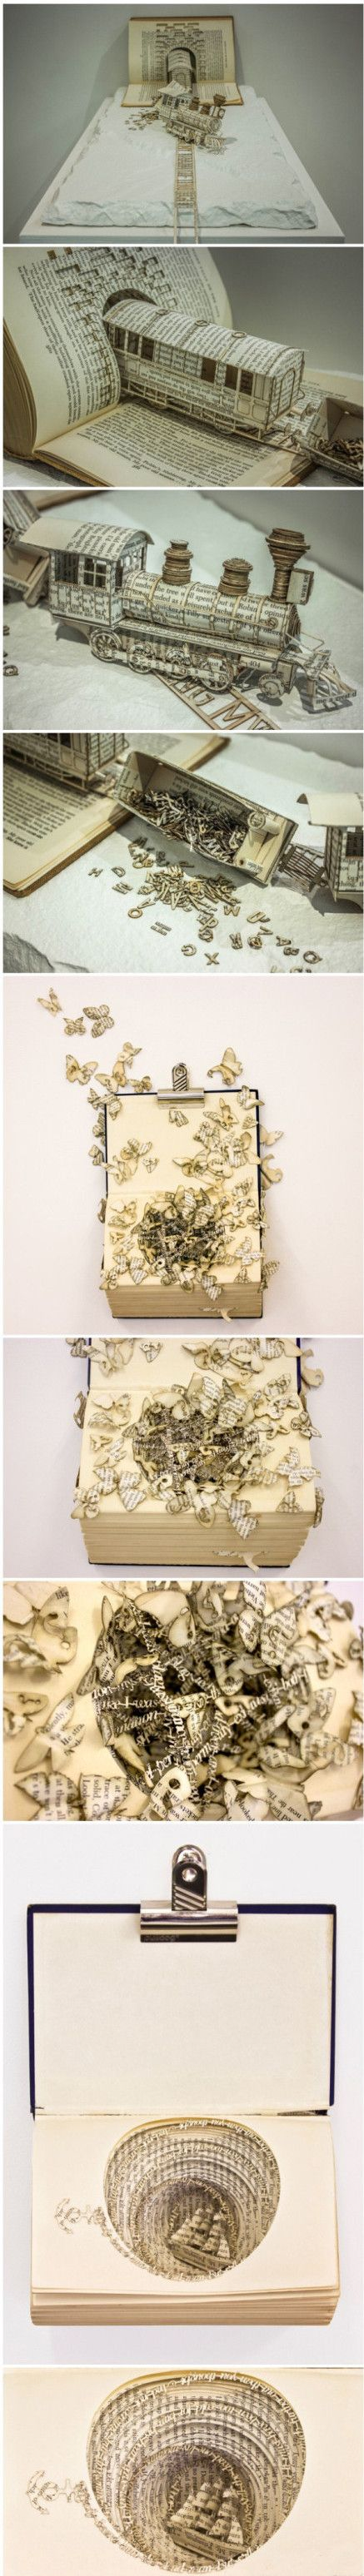 Paper + Book + Art | 紙 + 著作 + アート | book sculpture.